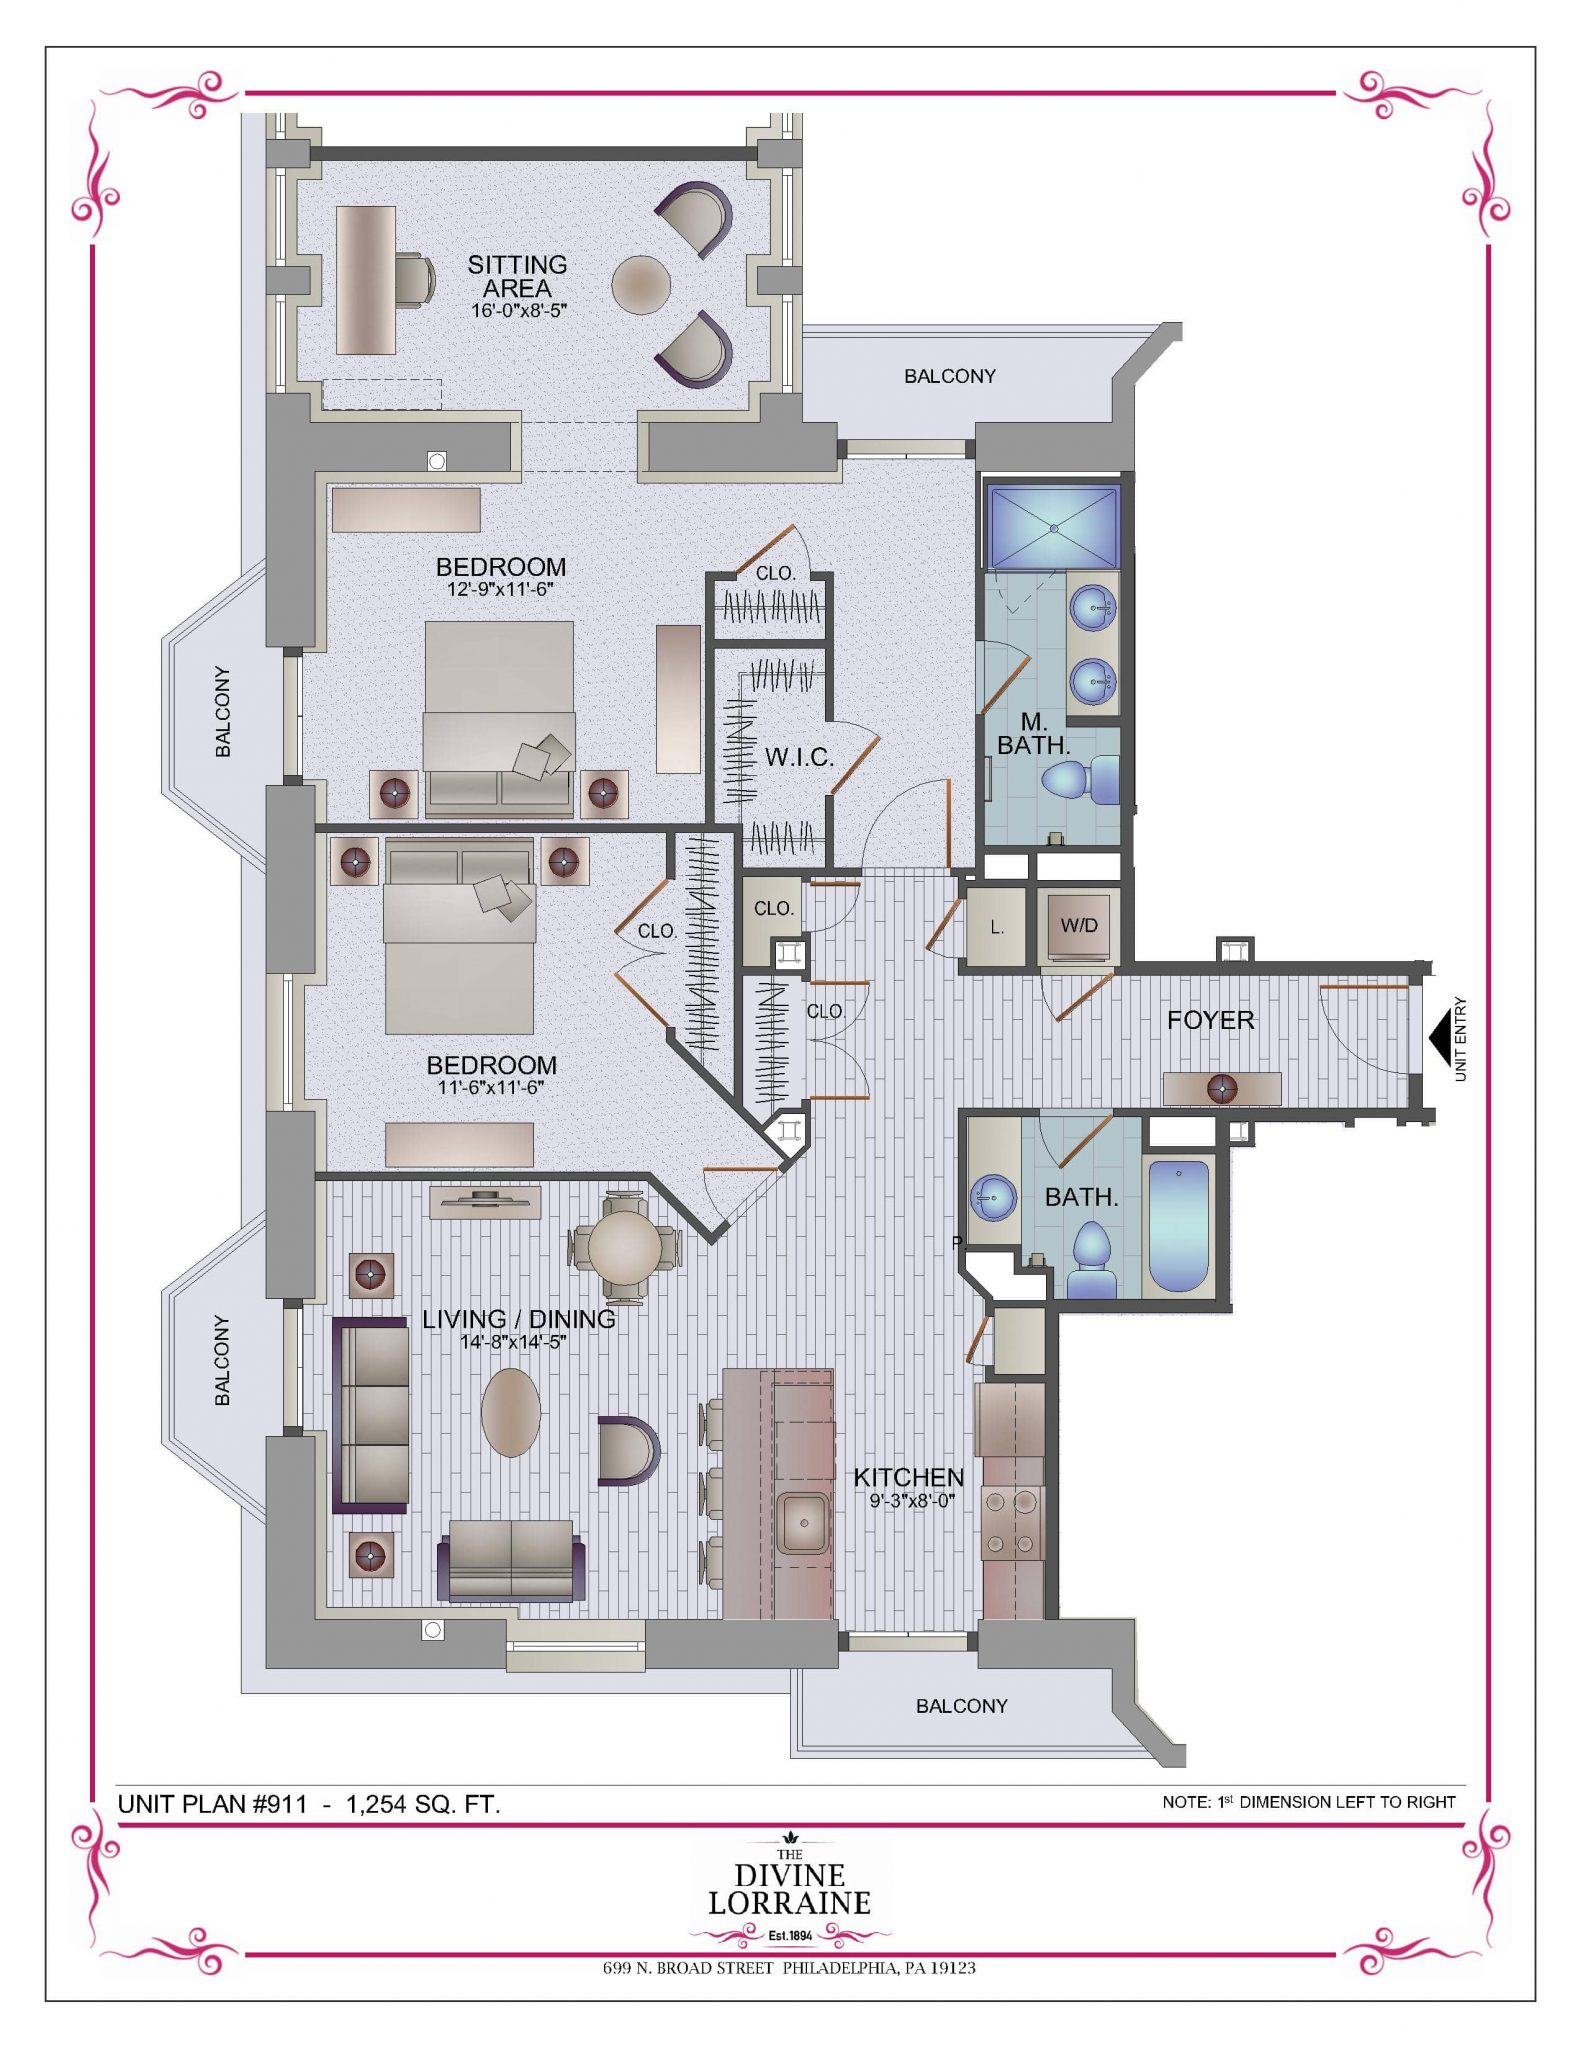 floor plans the divine lorraine hotel two bedrooms more floor plans available